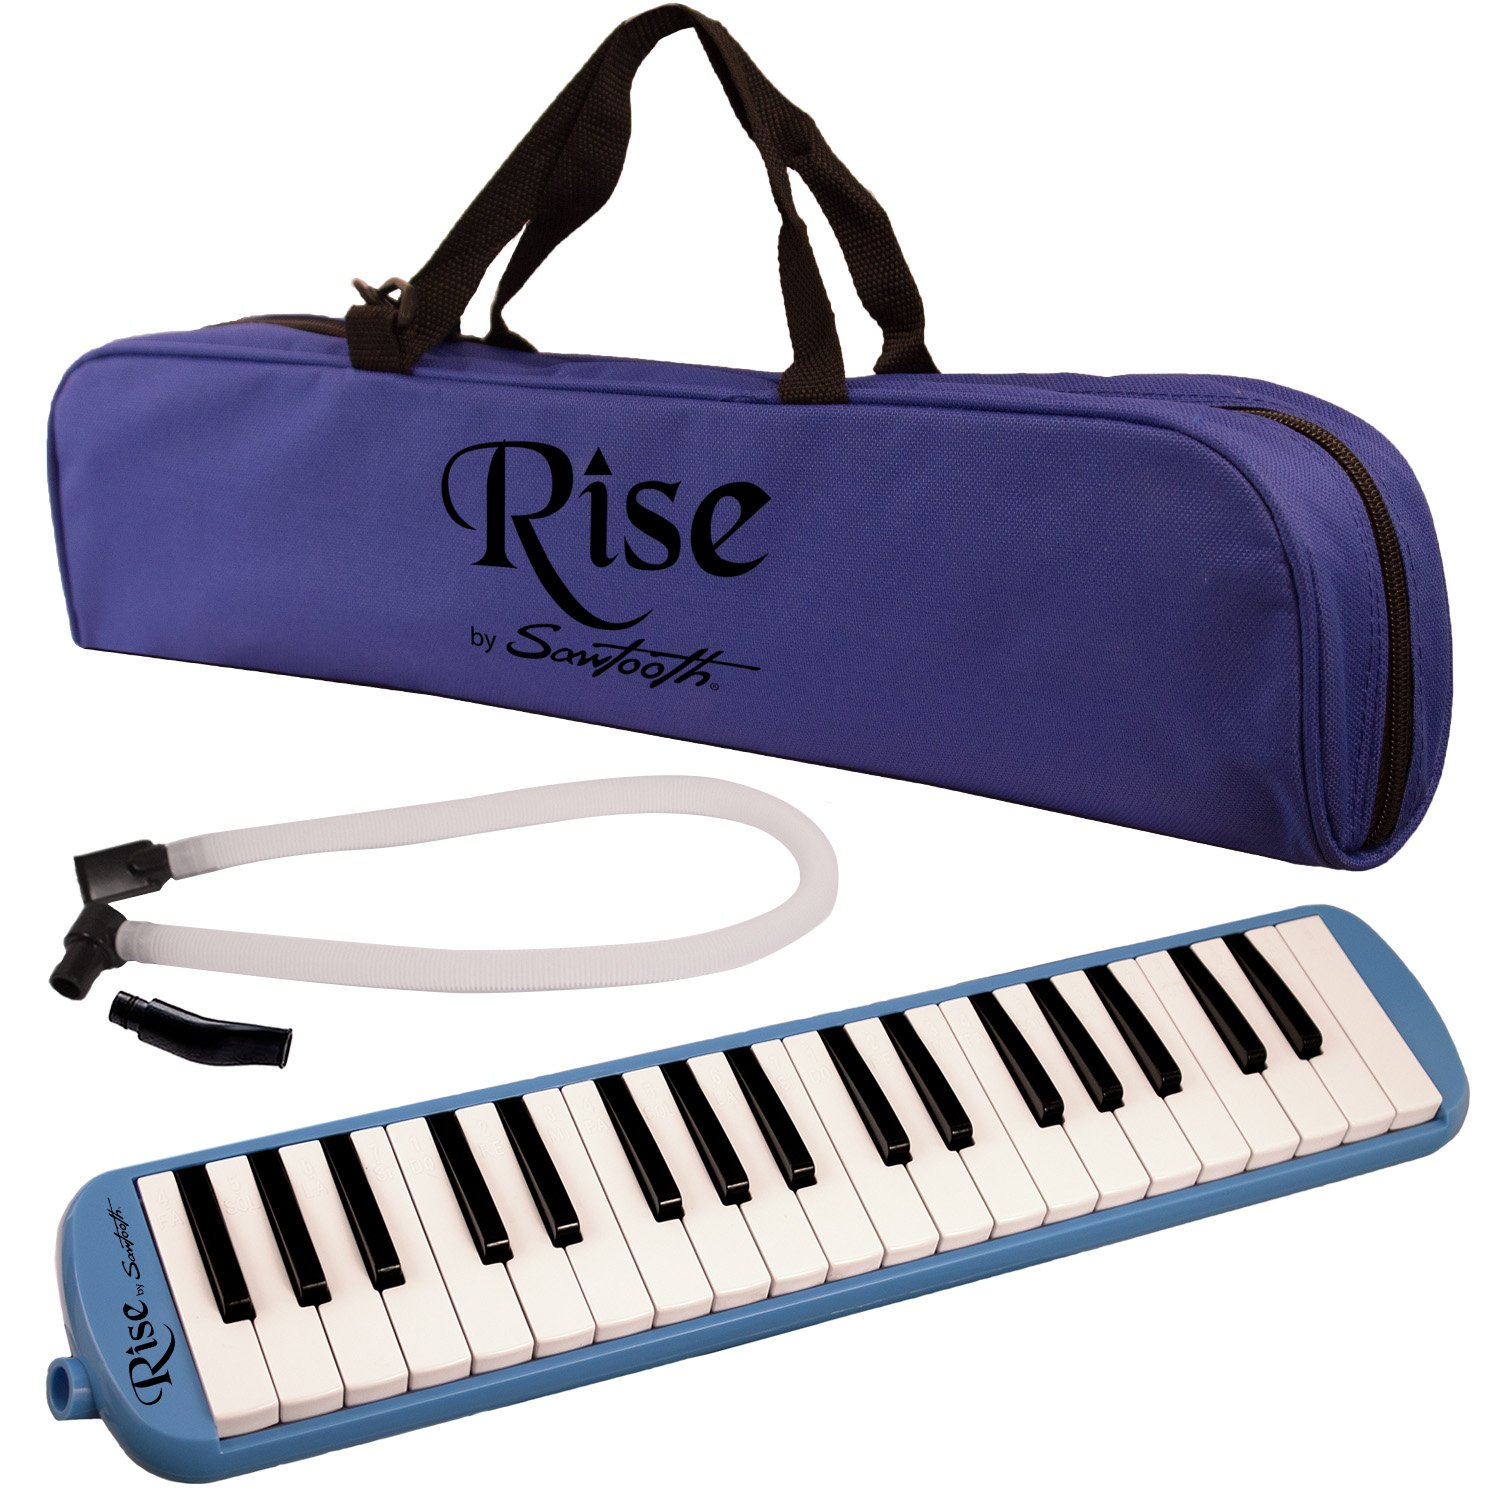 Rise by Sawtooth ST- RISE-MEL-37-BLUE Piano Style Melodica, Blue